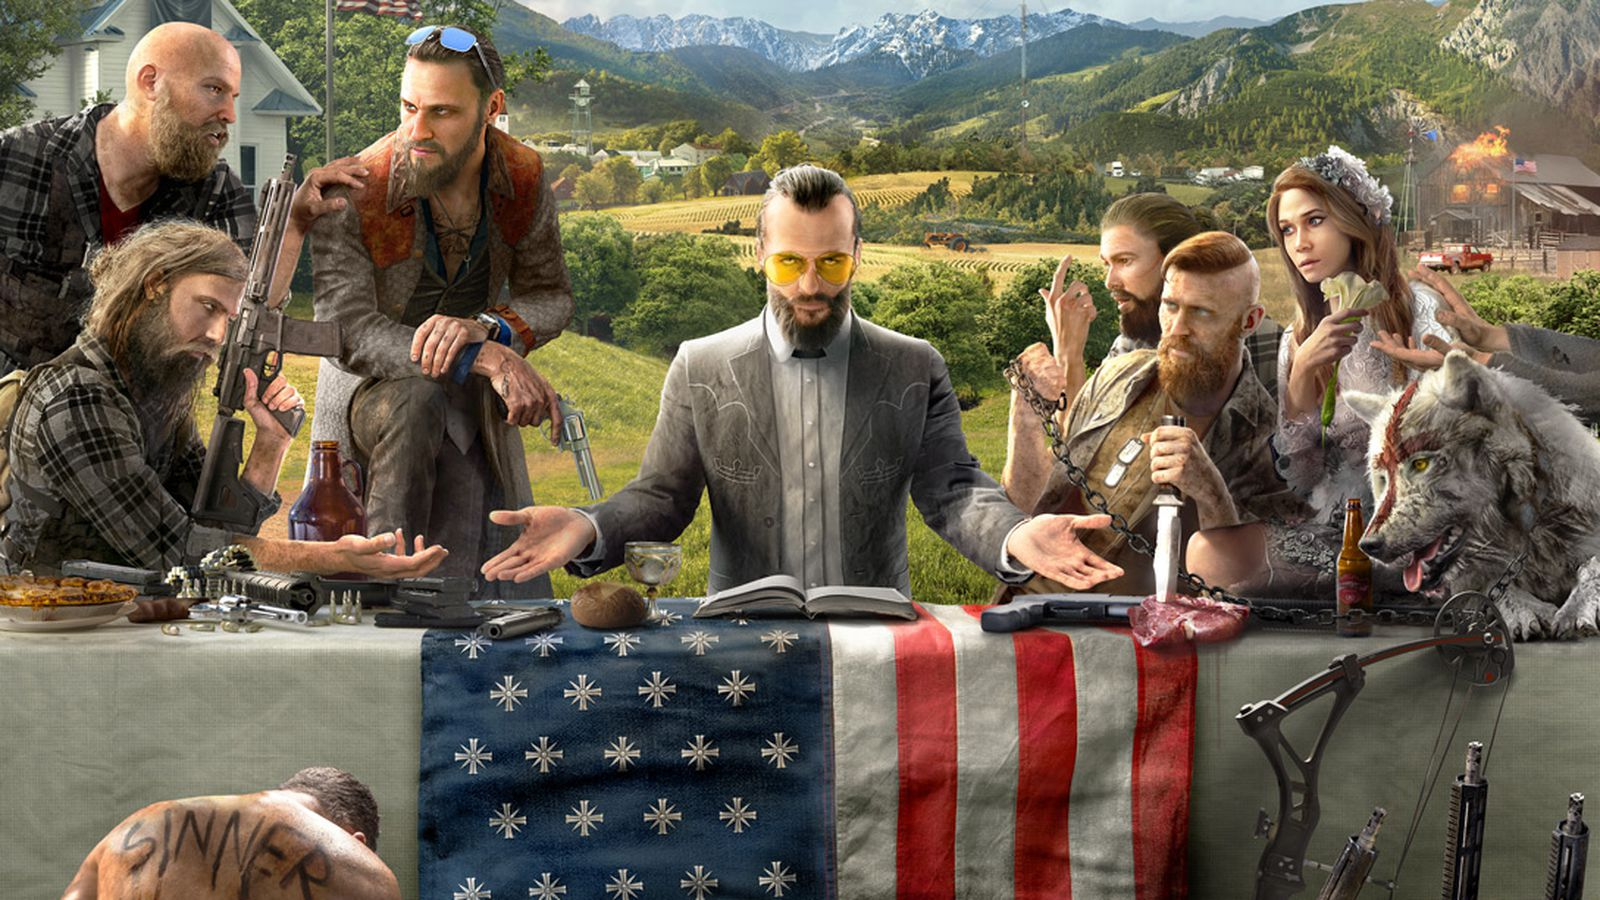 Far Cry 5 artwork introduces us to a religious cult